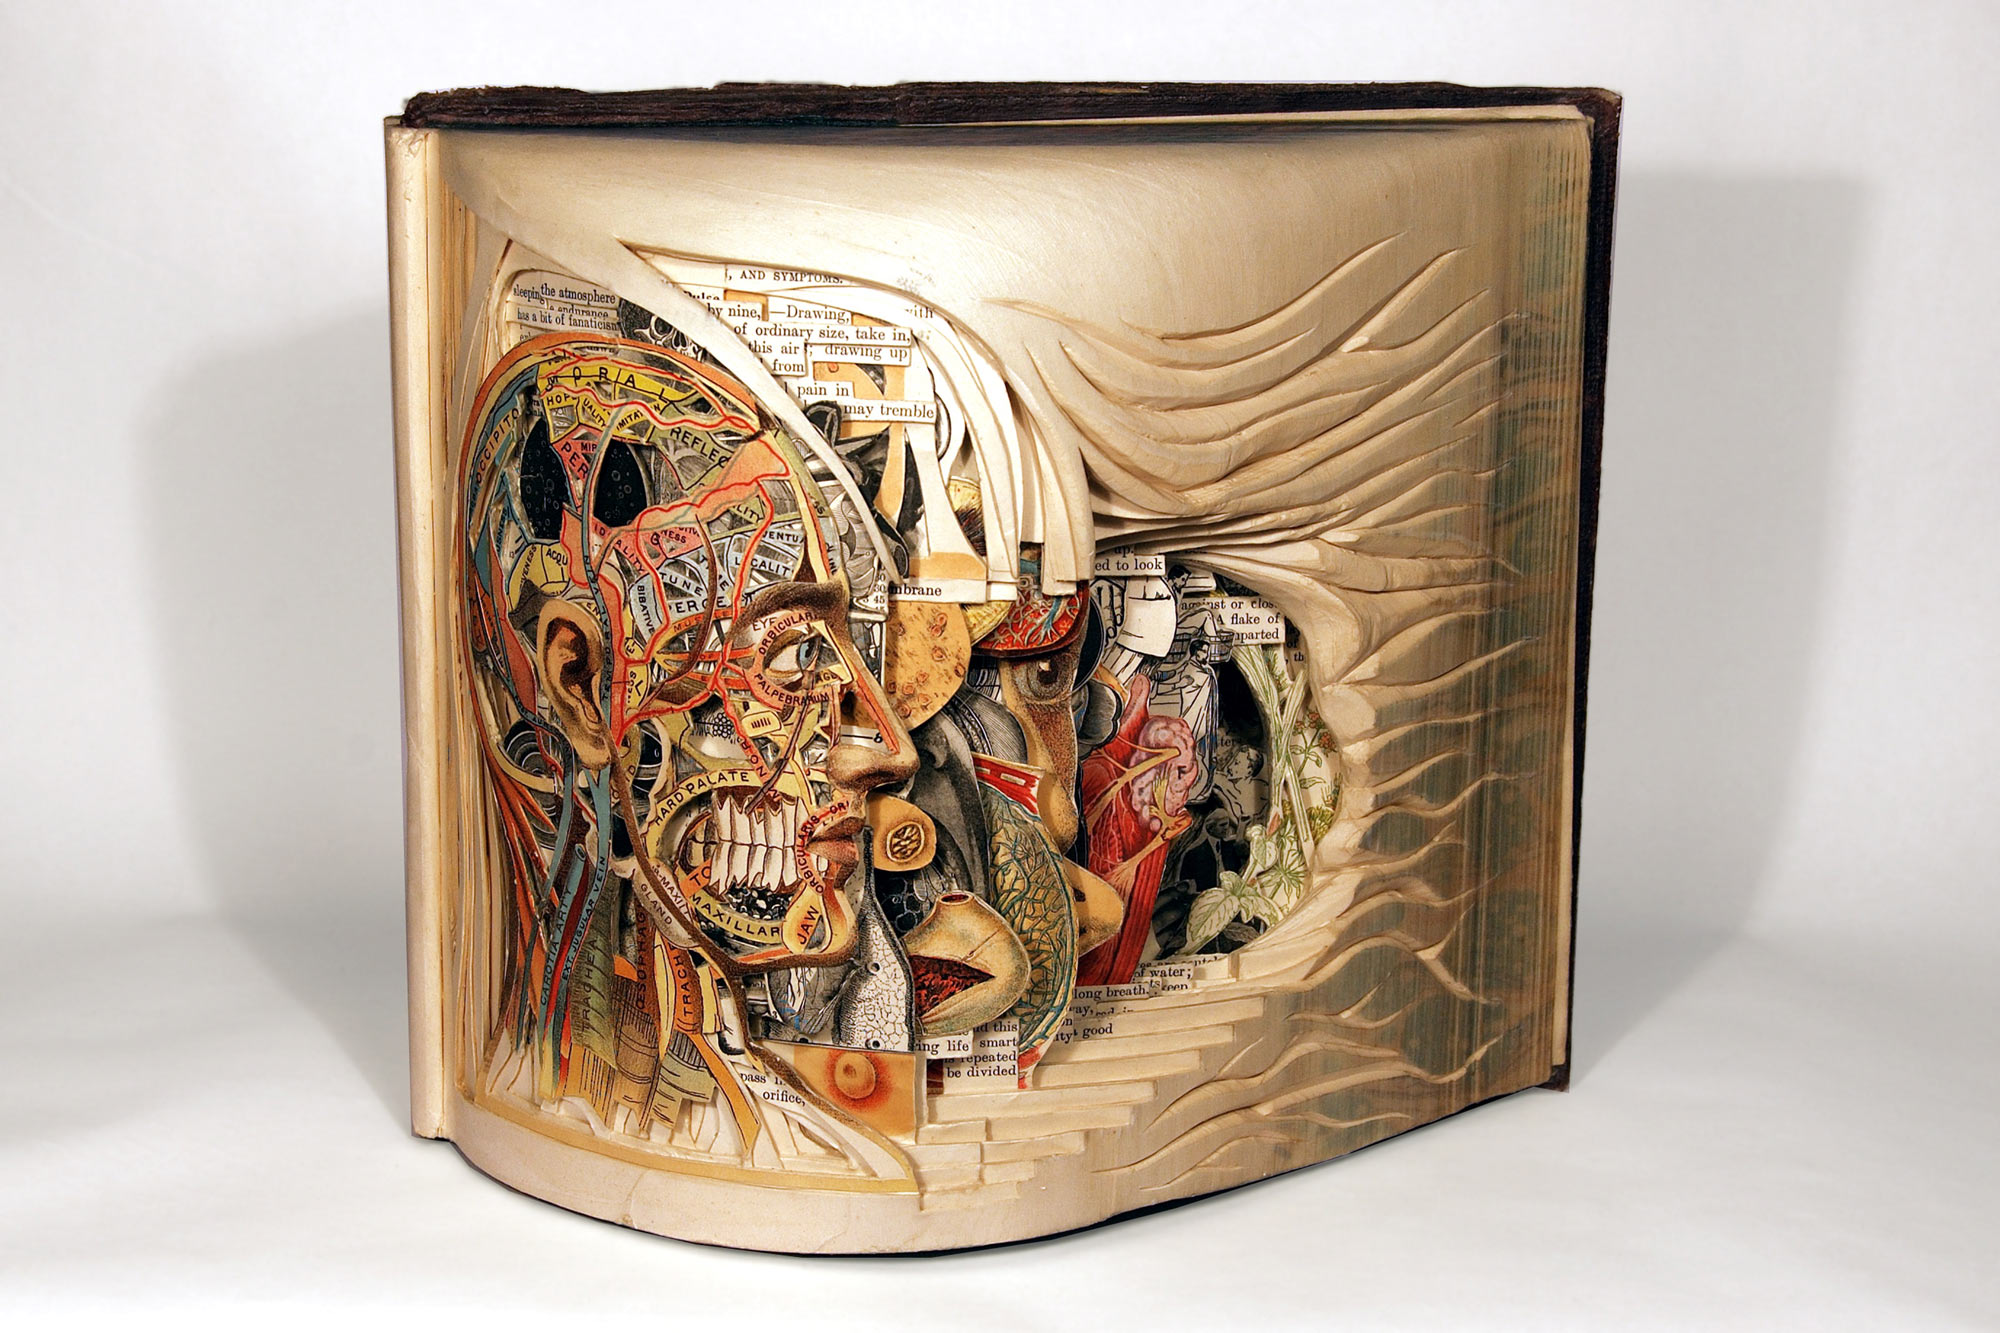 One of Brian Dettmer's book sculptures. Photo: Courtesy of Brian Dettmer